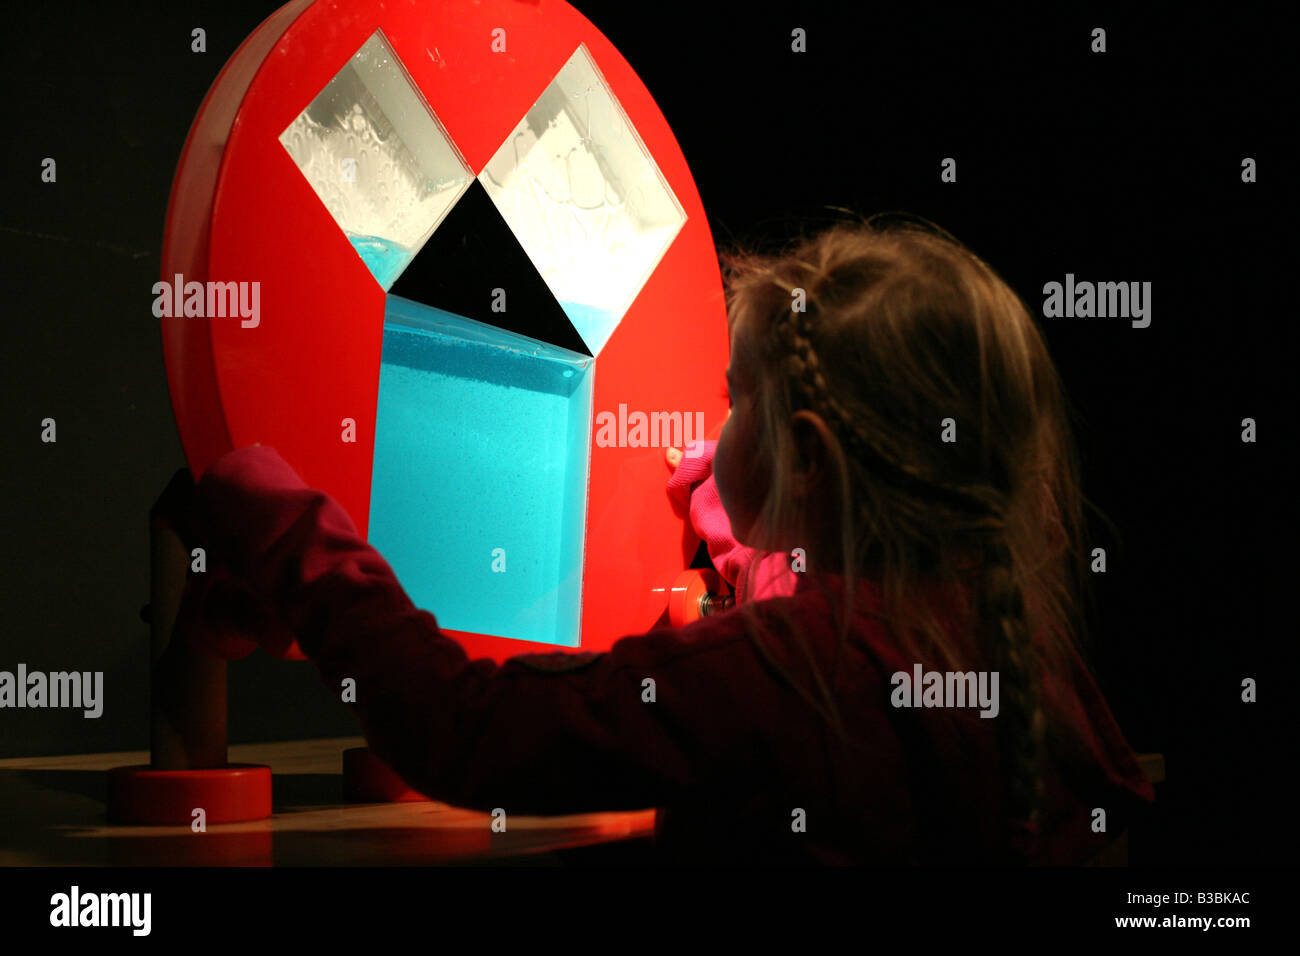 Young visitor studies communicating vessels in Science Centre Spectrum in Deutsches Technikmuseum Berlin, Germany - Stock Image